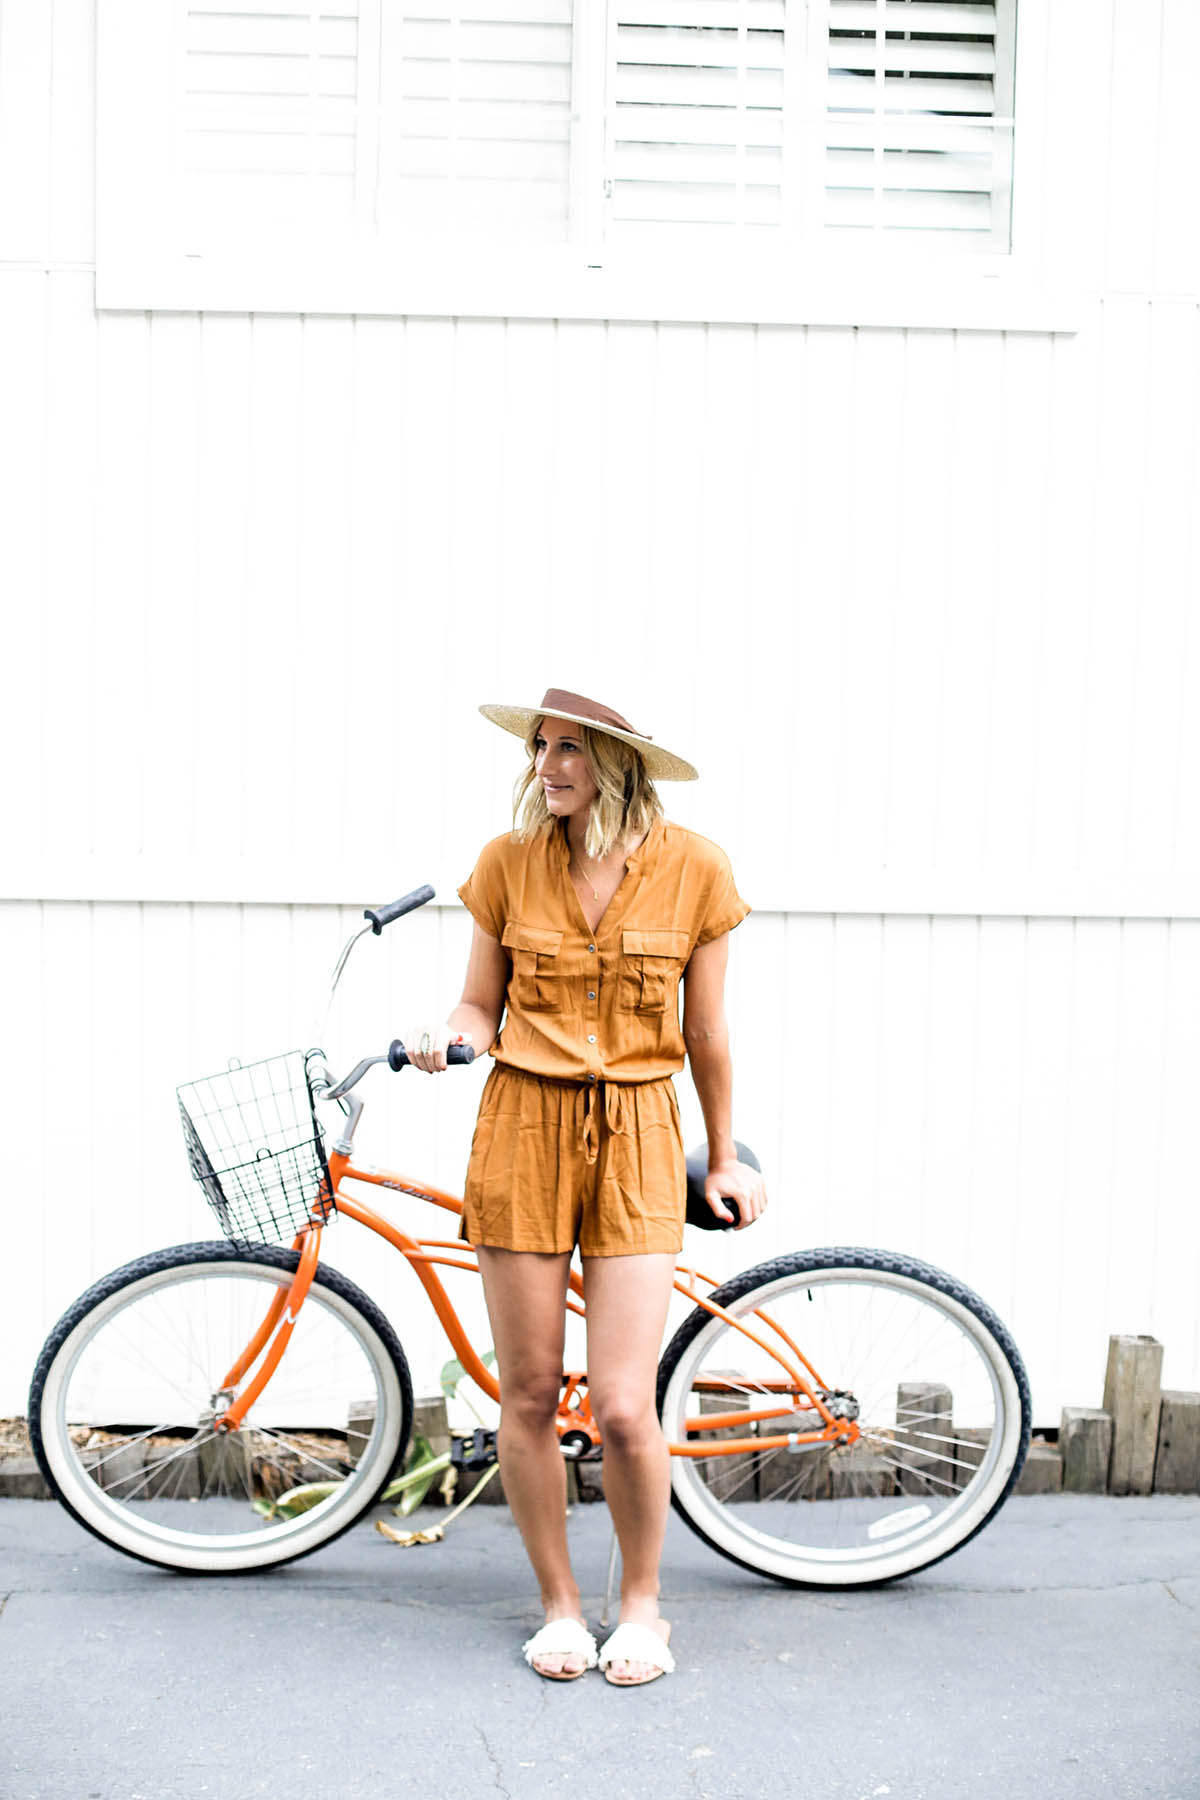 Amanda Holstein in Old Navy romper and woven fedora hat